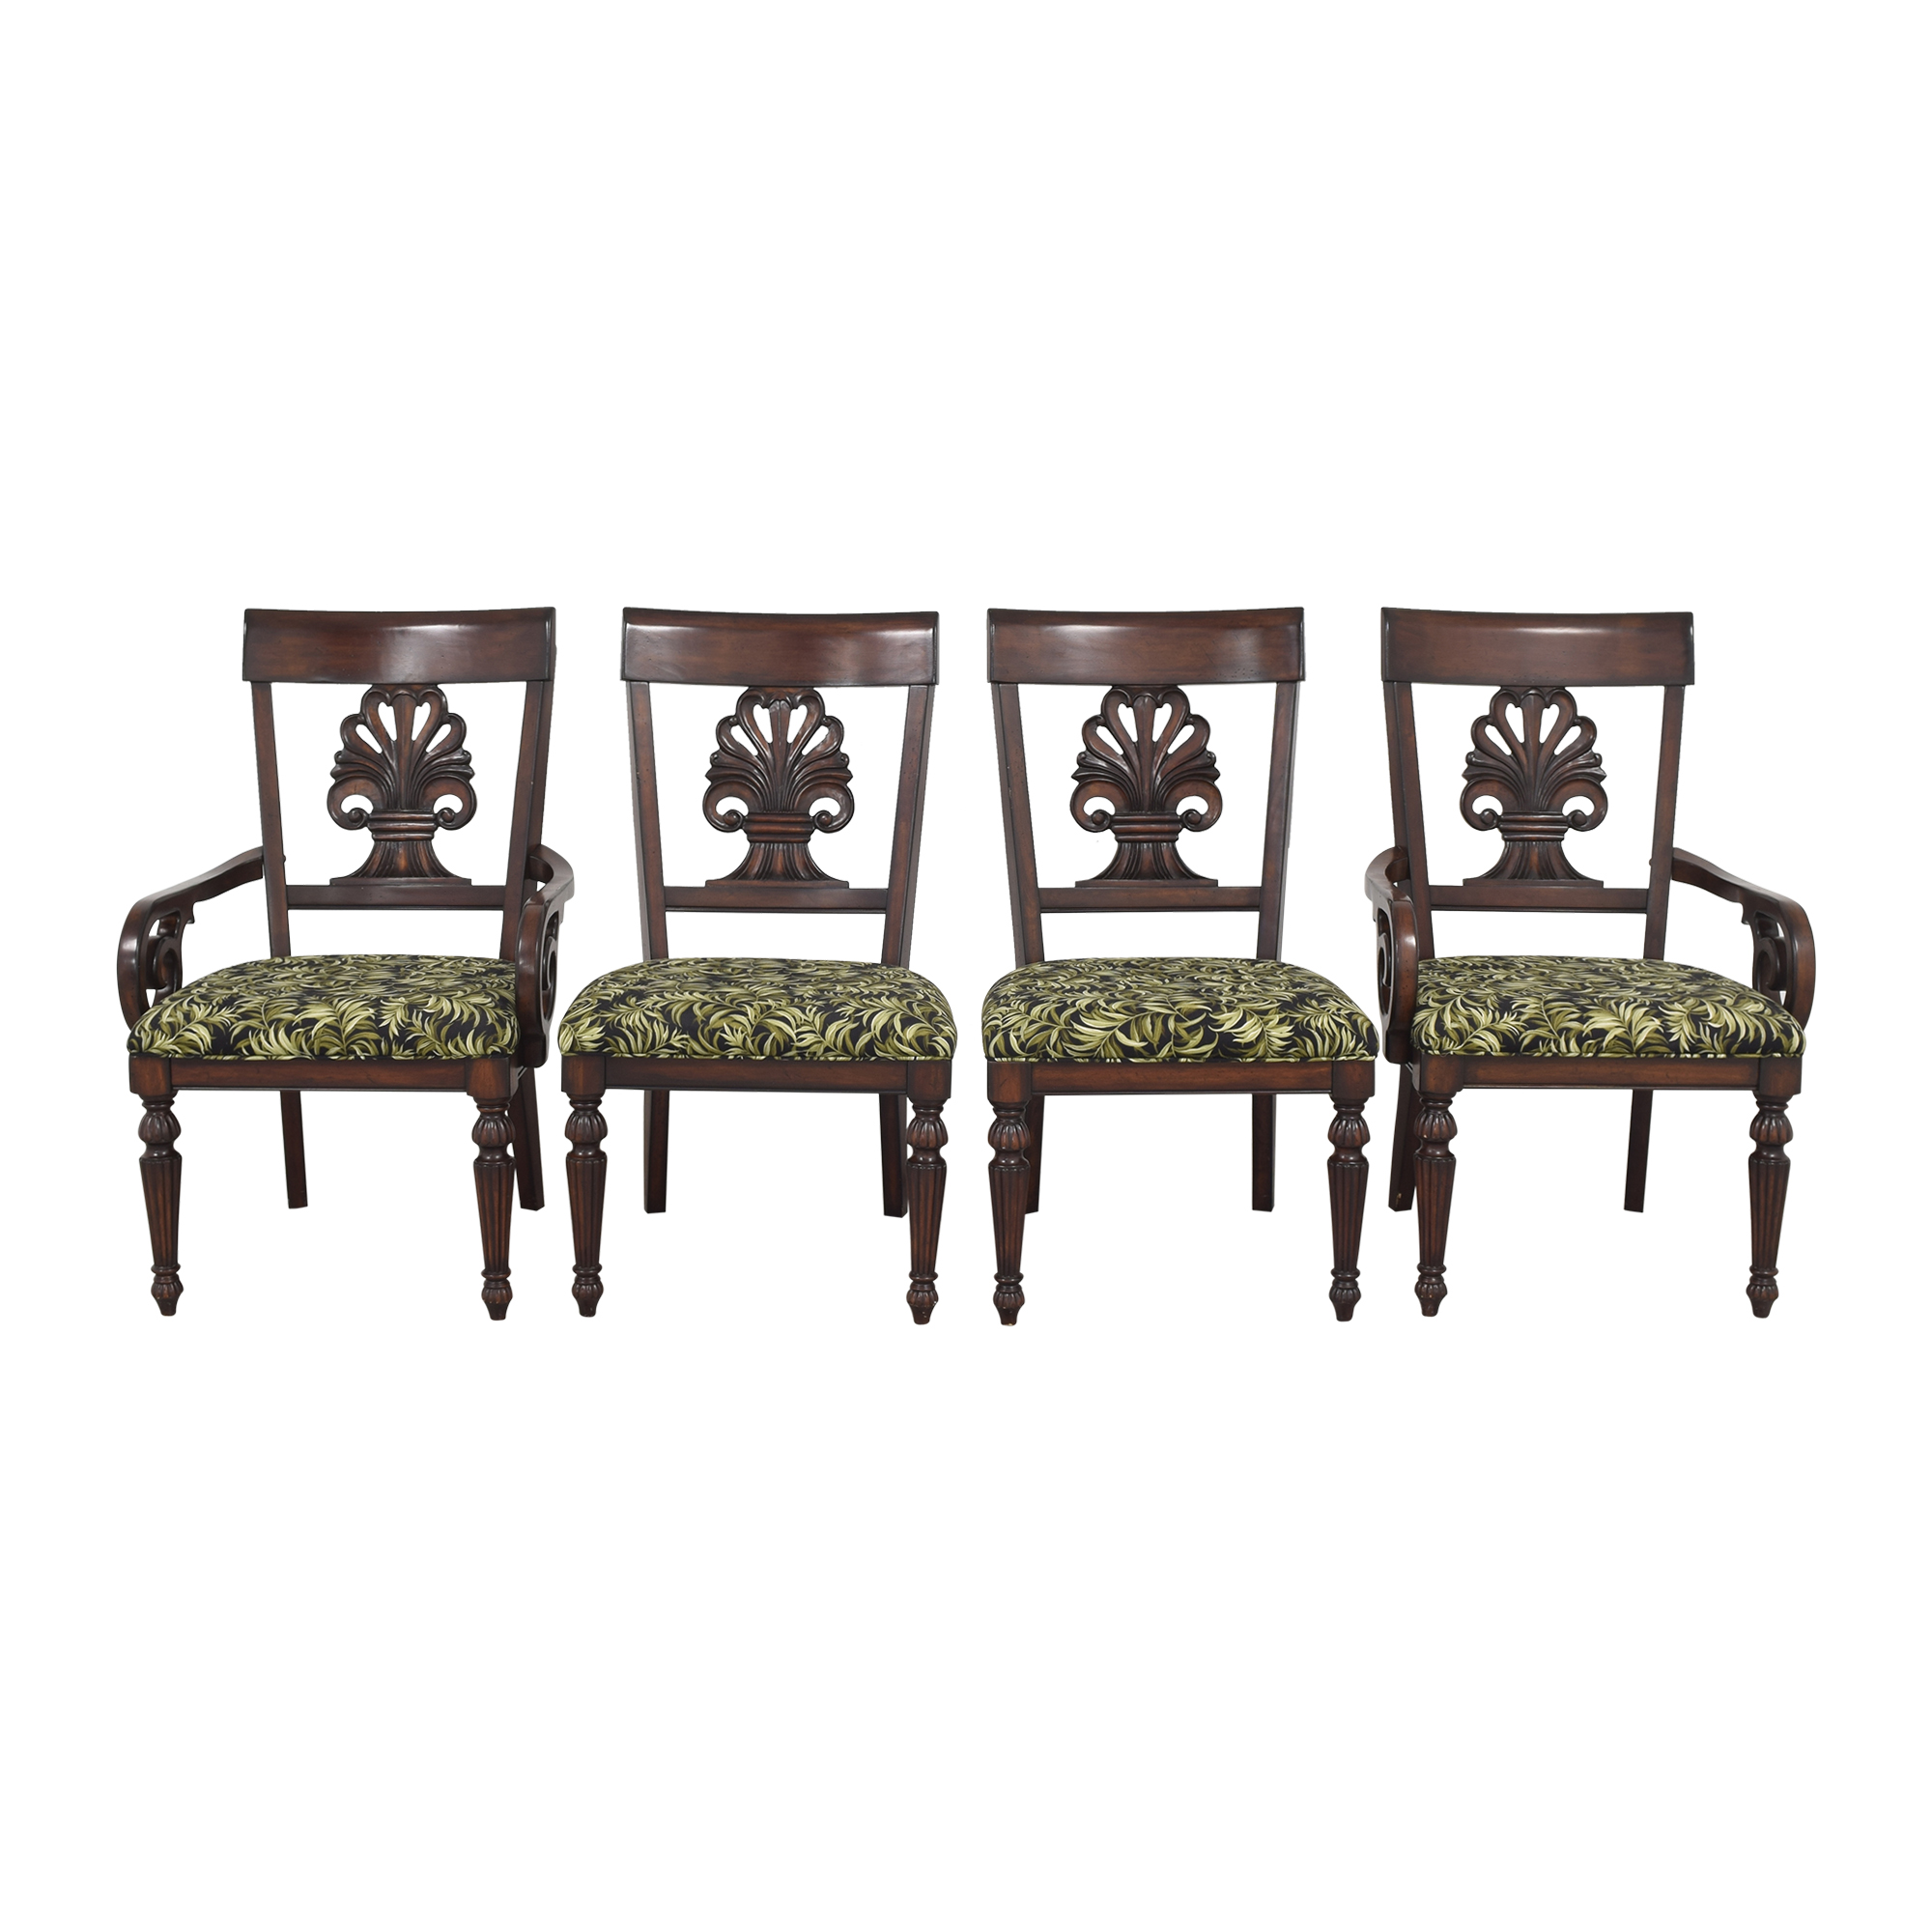 Tommy Bahama Home Tommy Bahama Dining Chairs dark brown & green